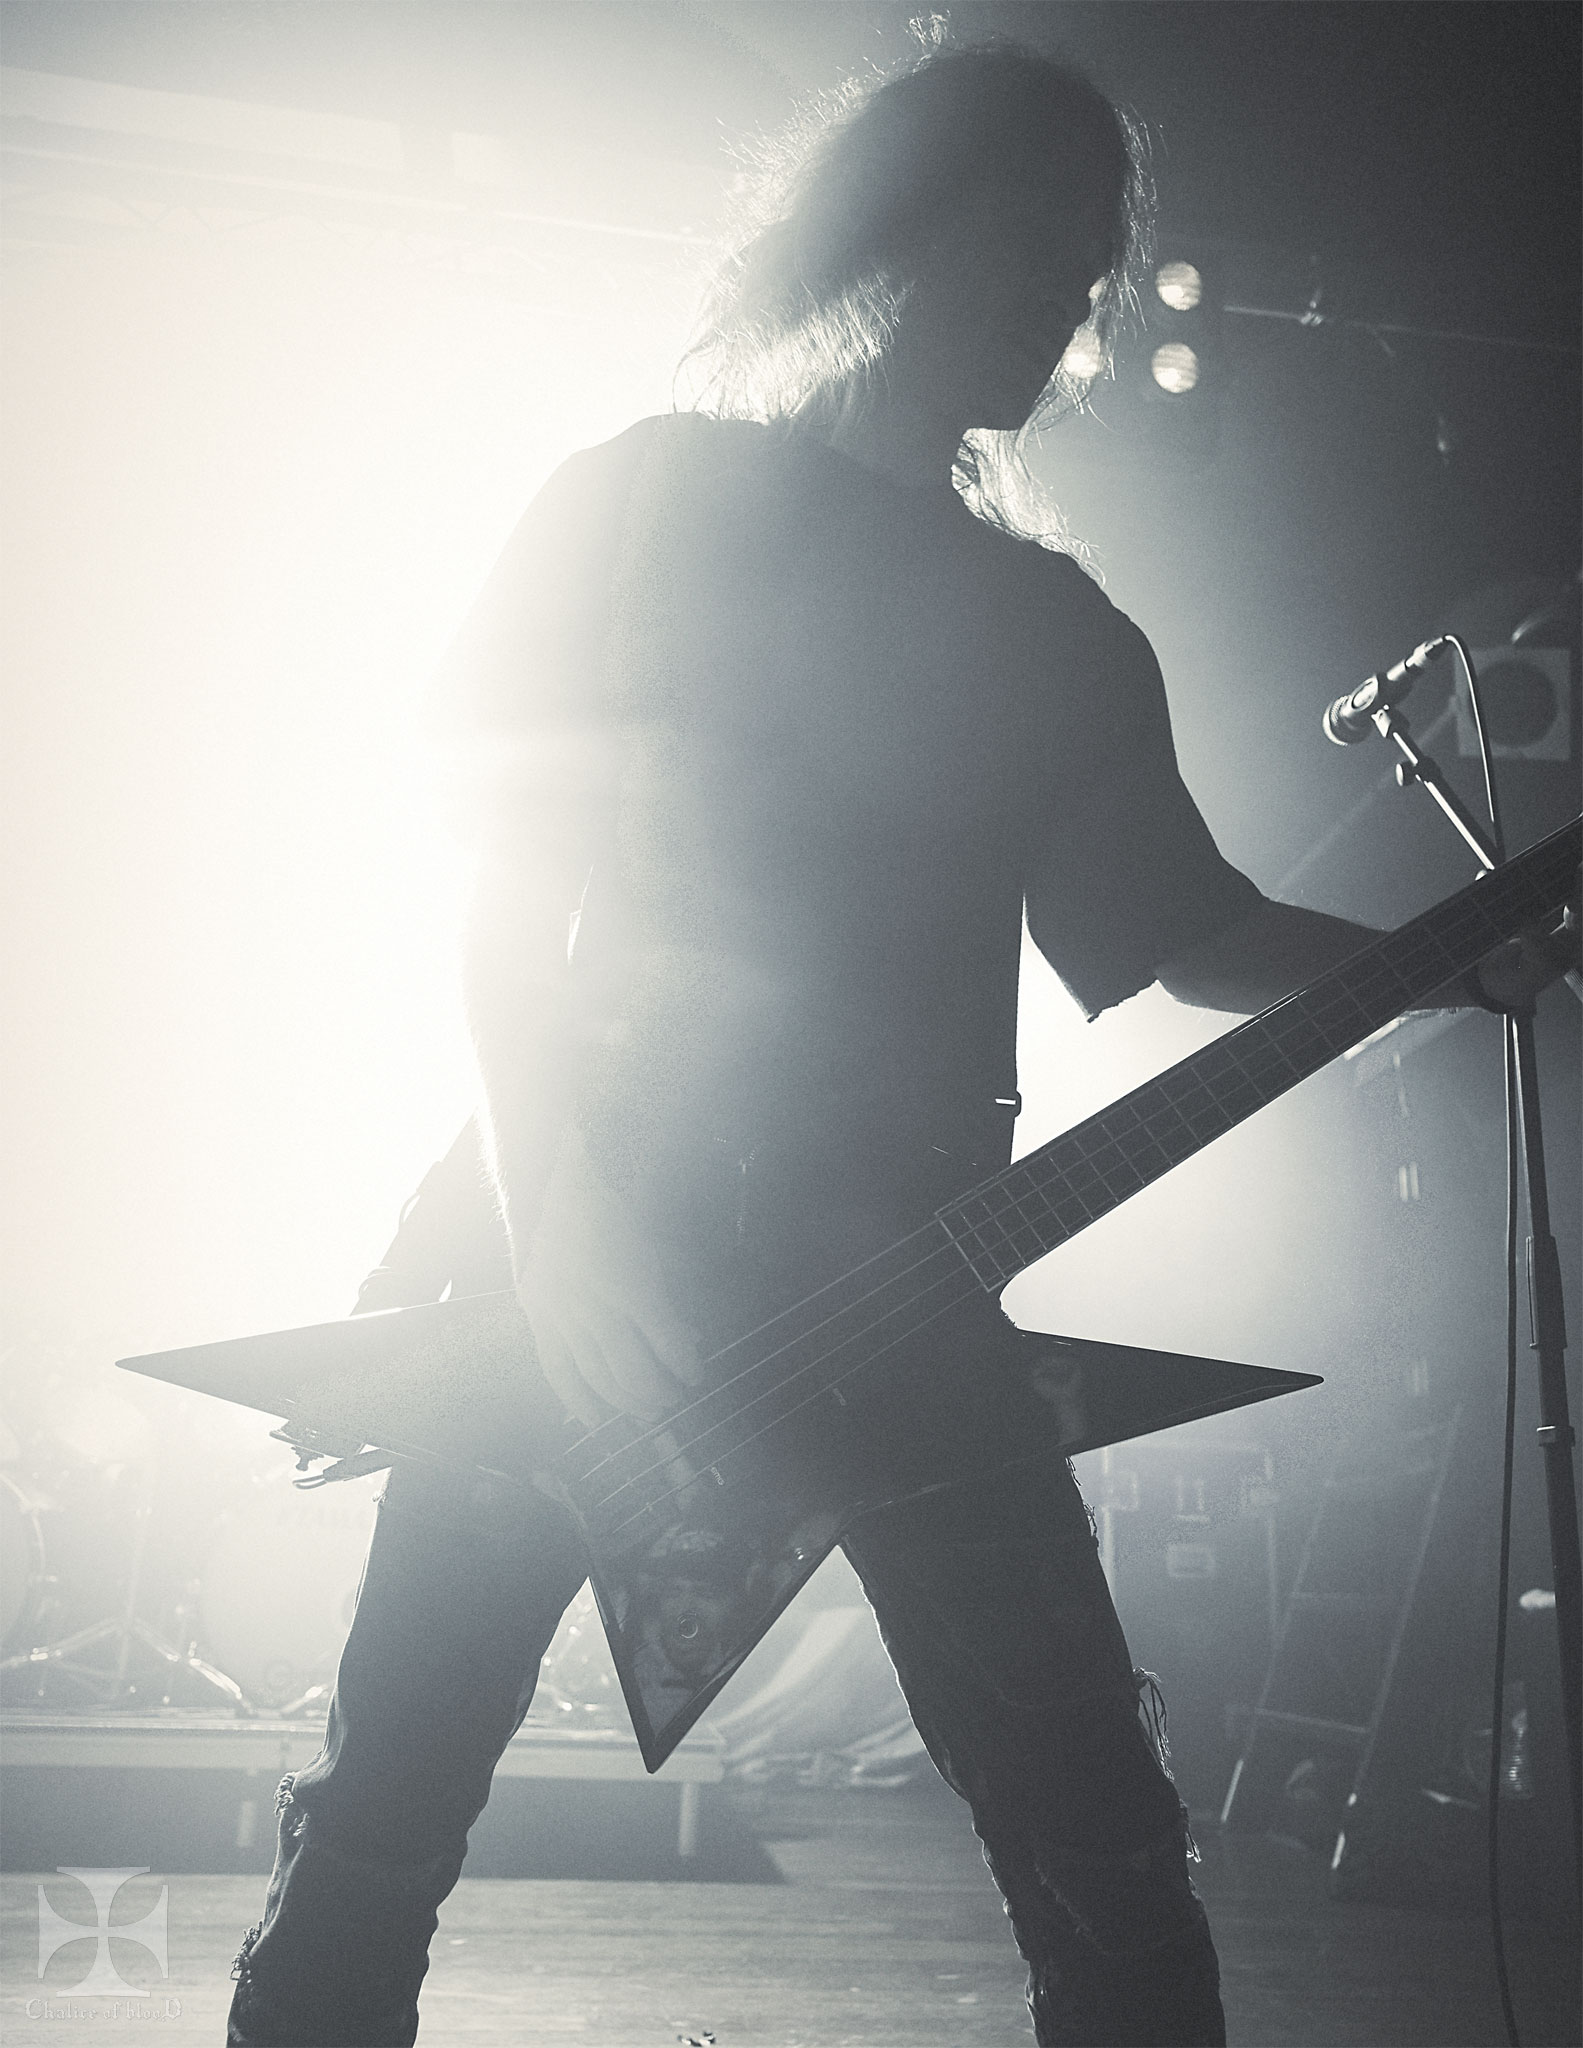 Kreator-0031-Exposure-watermarked.jpg